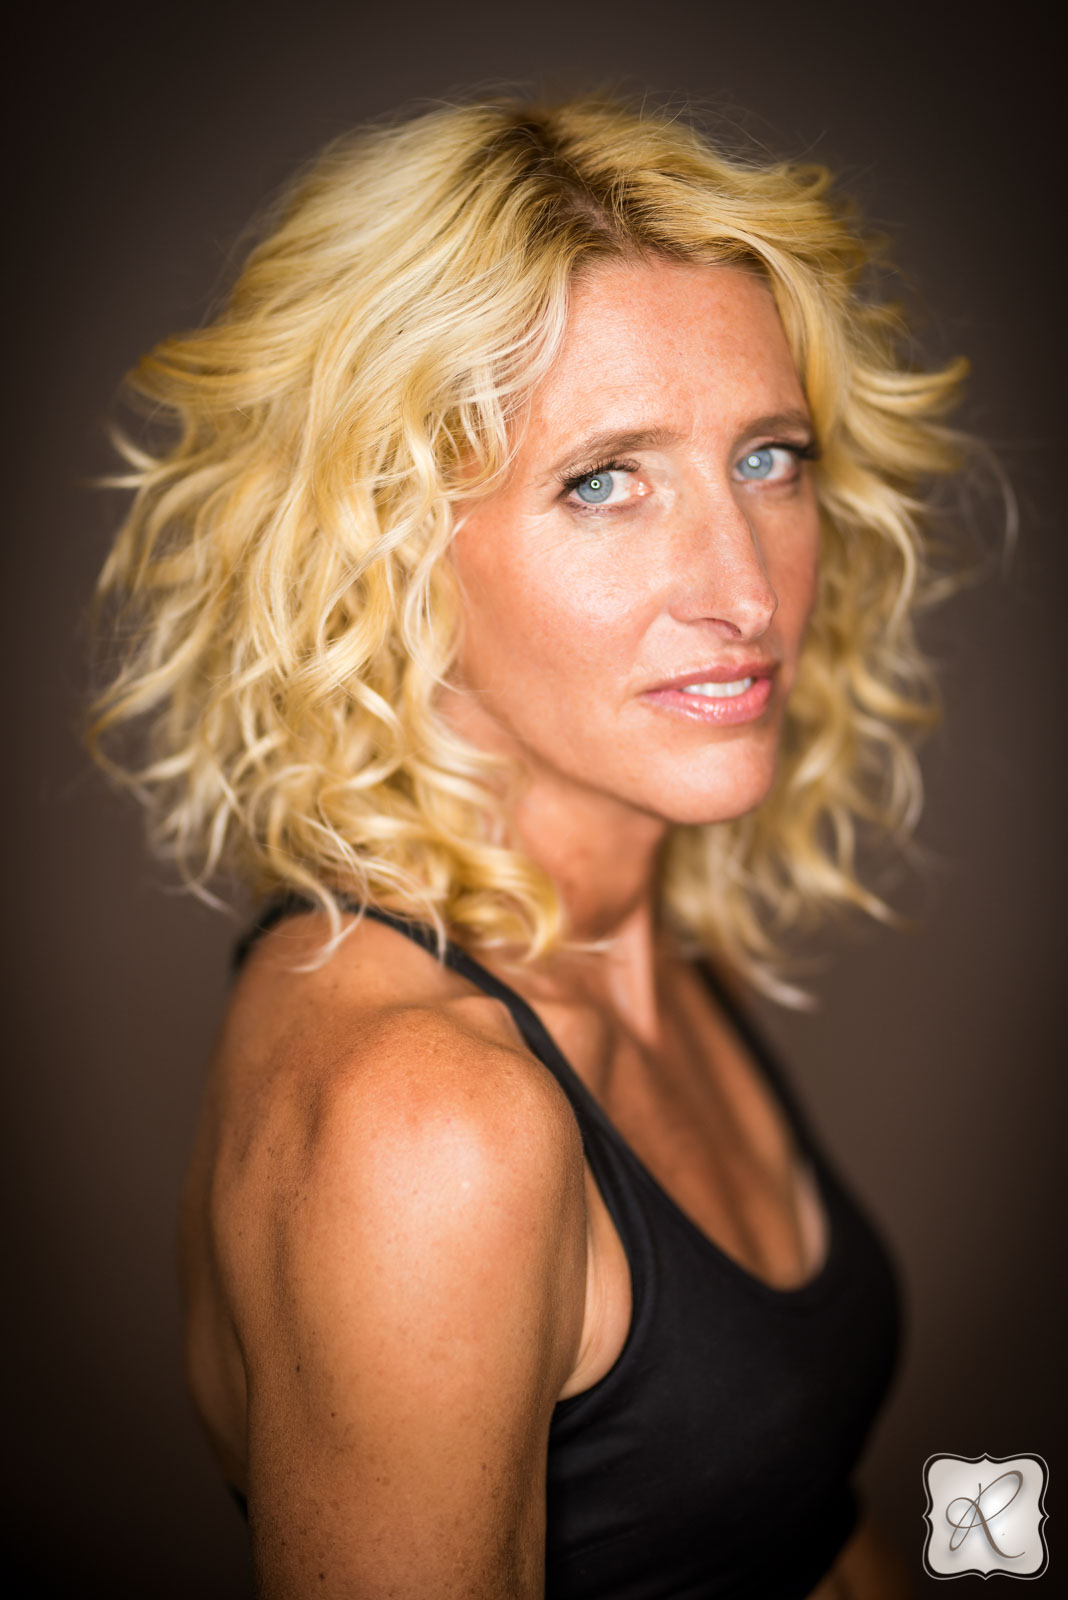 Model Portfolio Headshots Photographed in Durango Colorado by Allison Ragsdale Photography